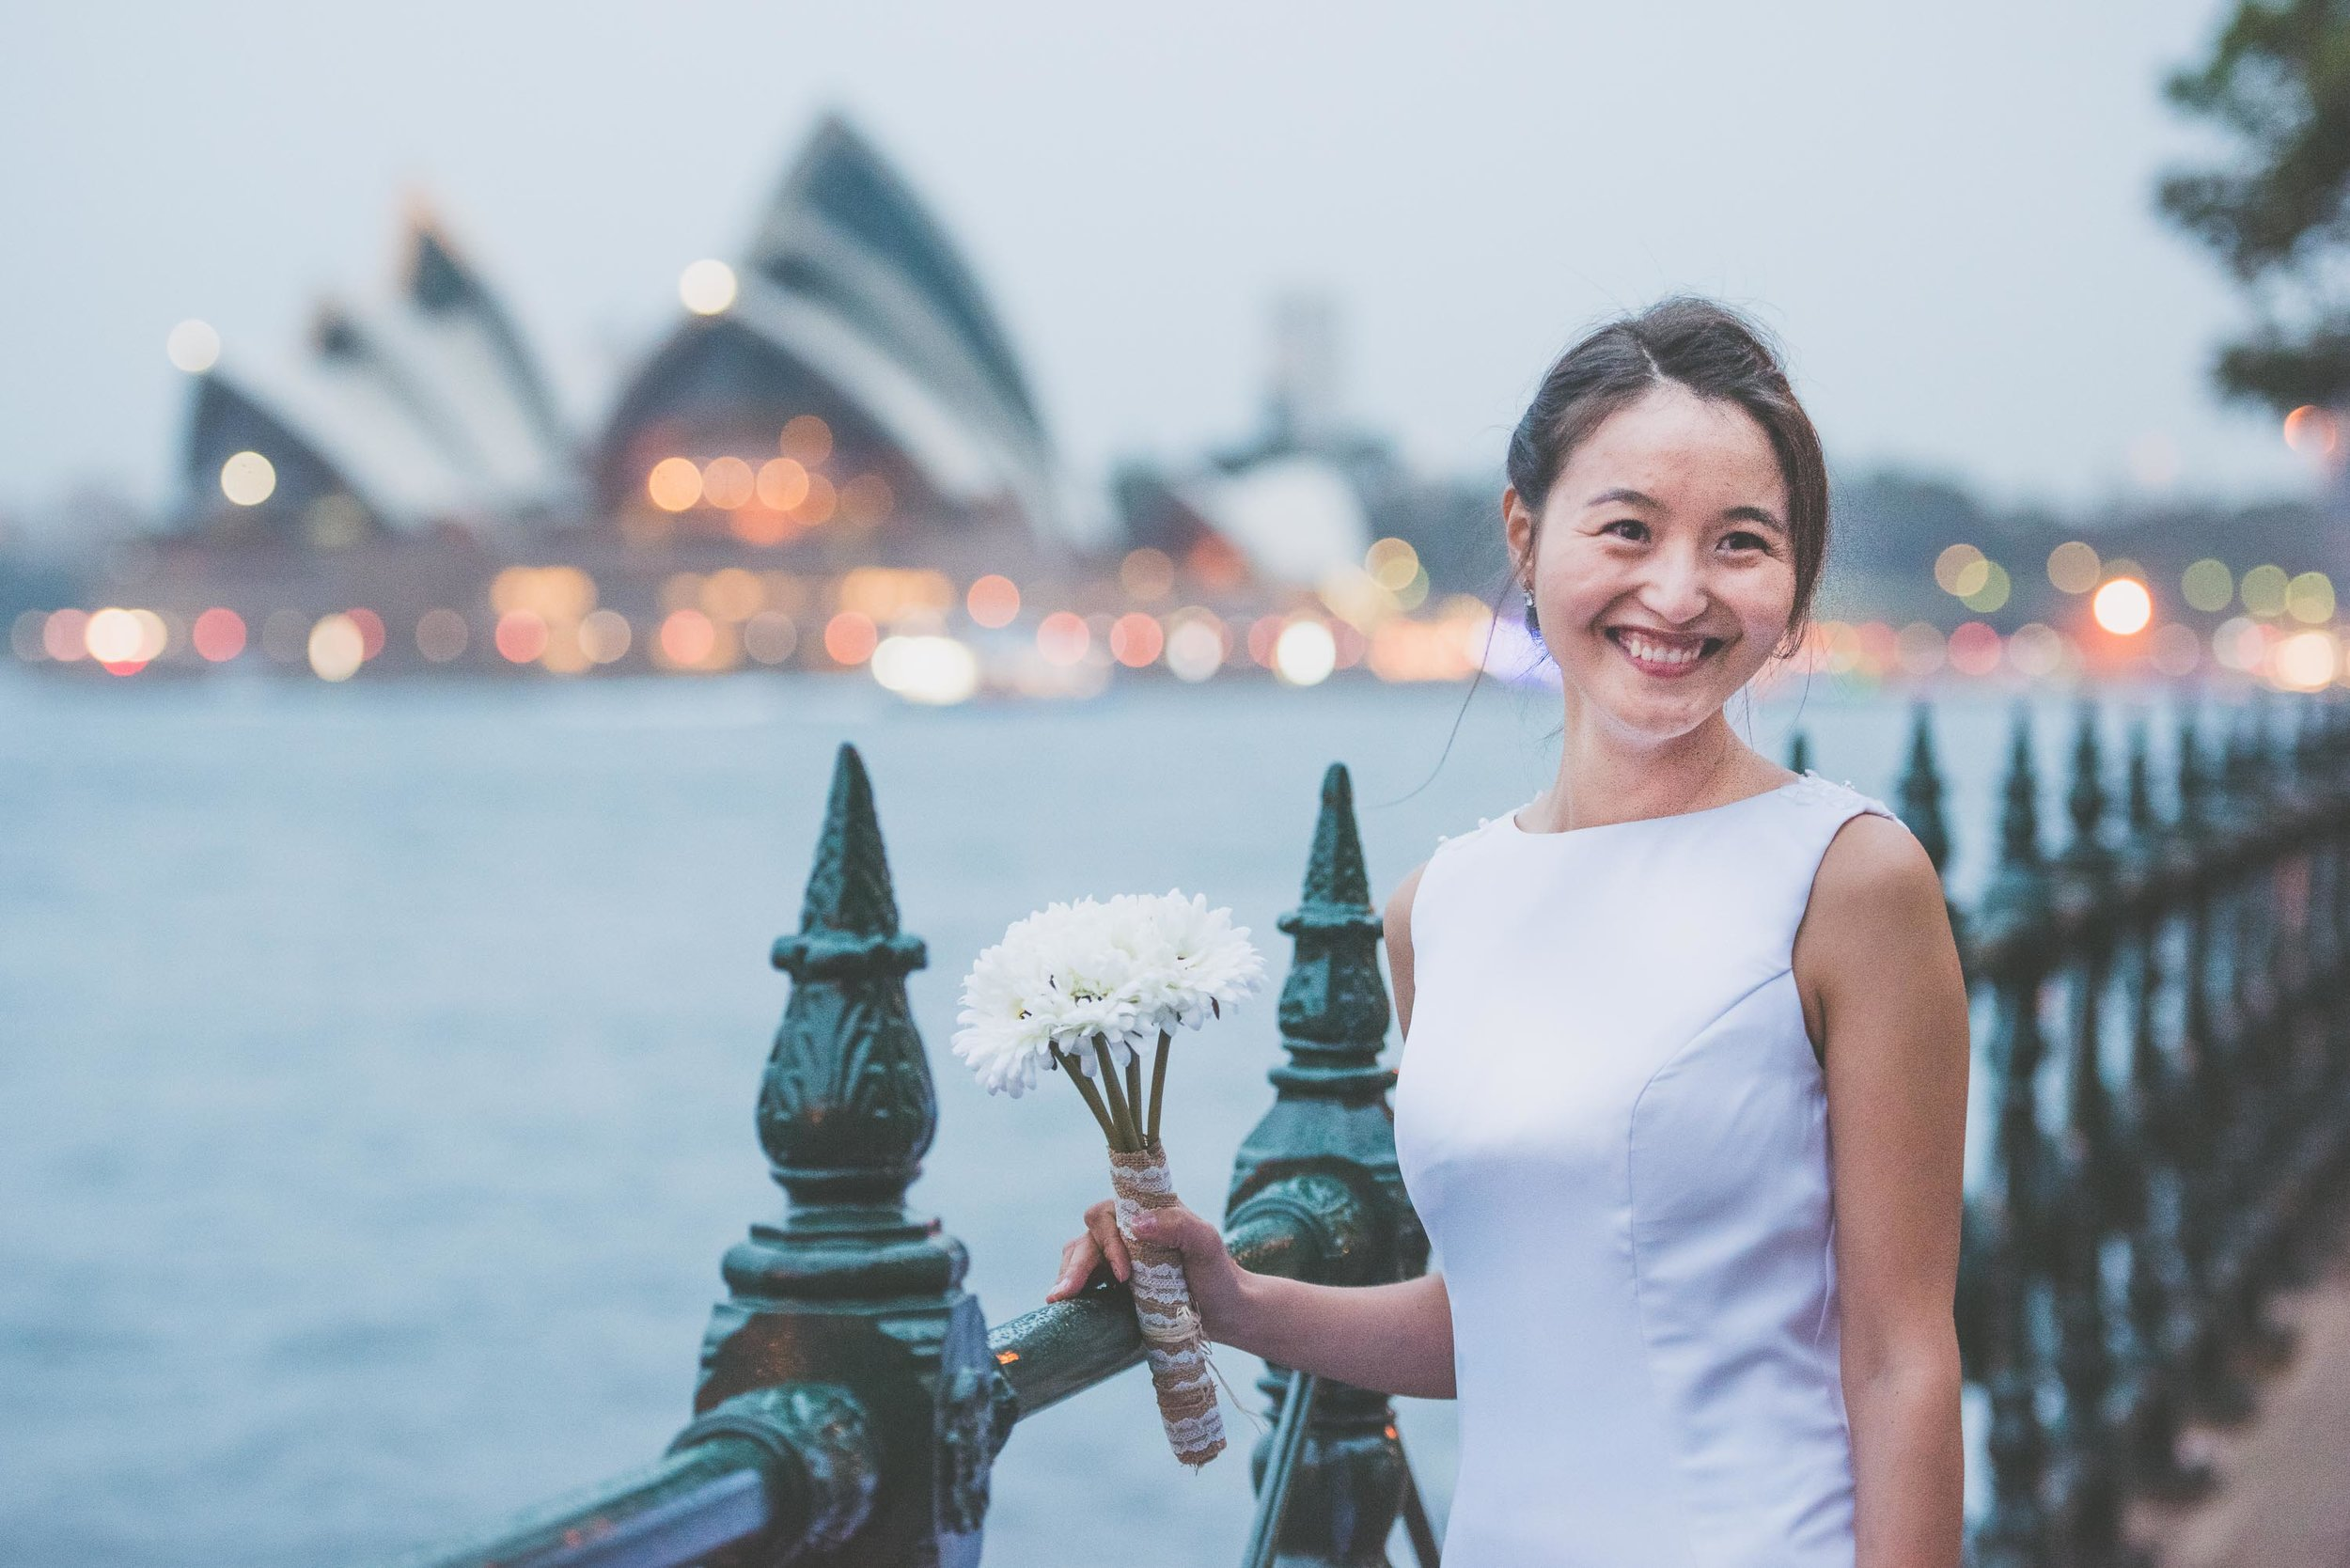 Drew and Purevsuven wedding - in front of Opera House - Photo credit Nicola Bailey-2.jpg